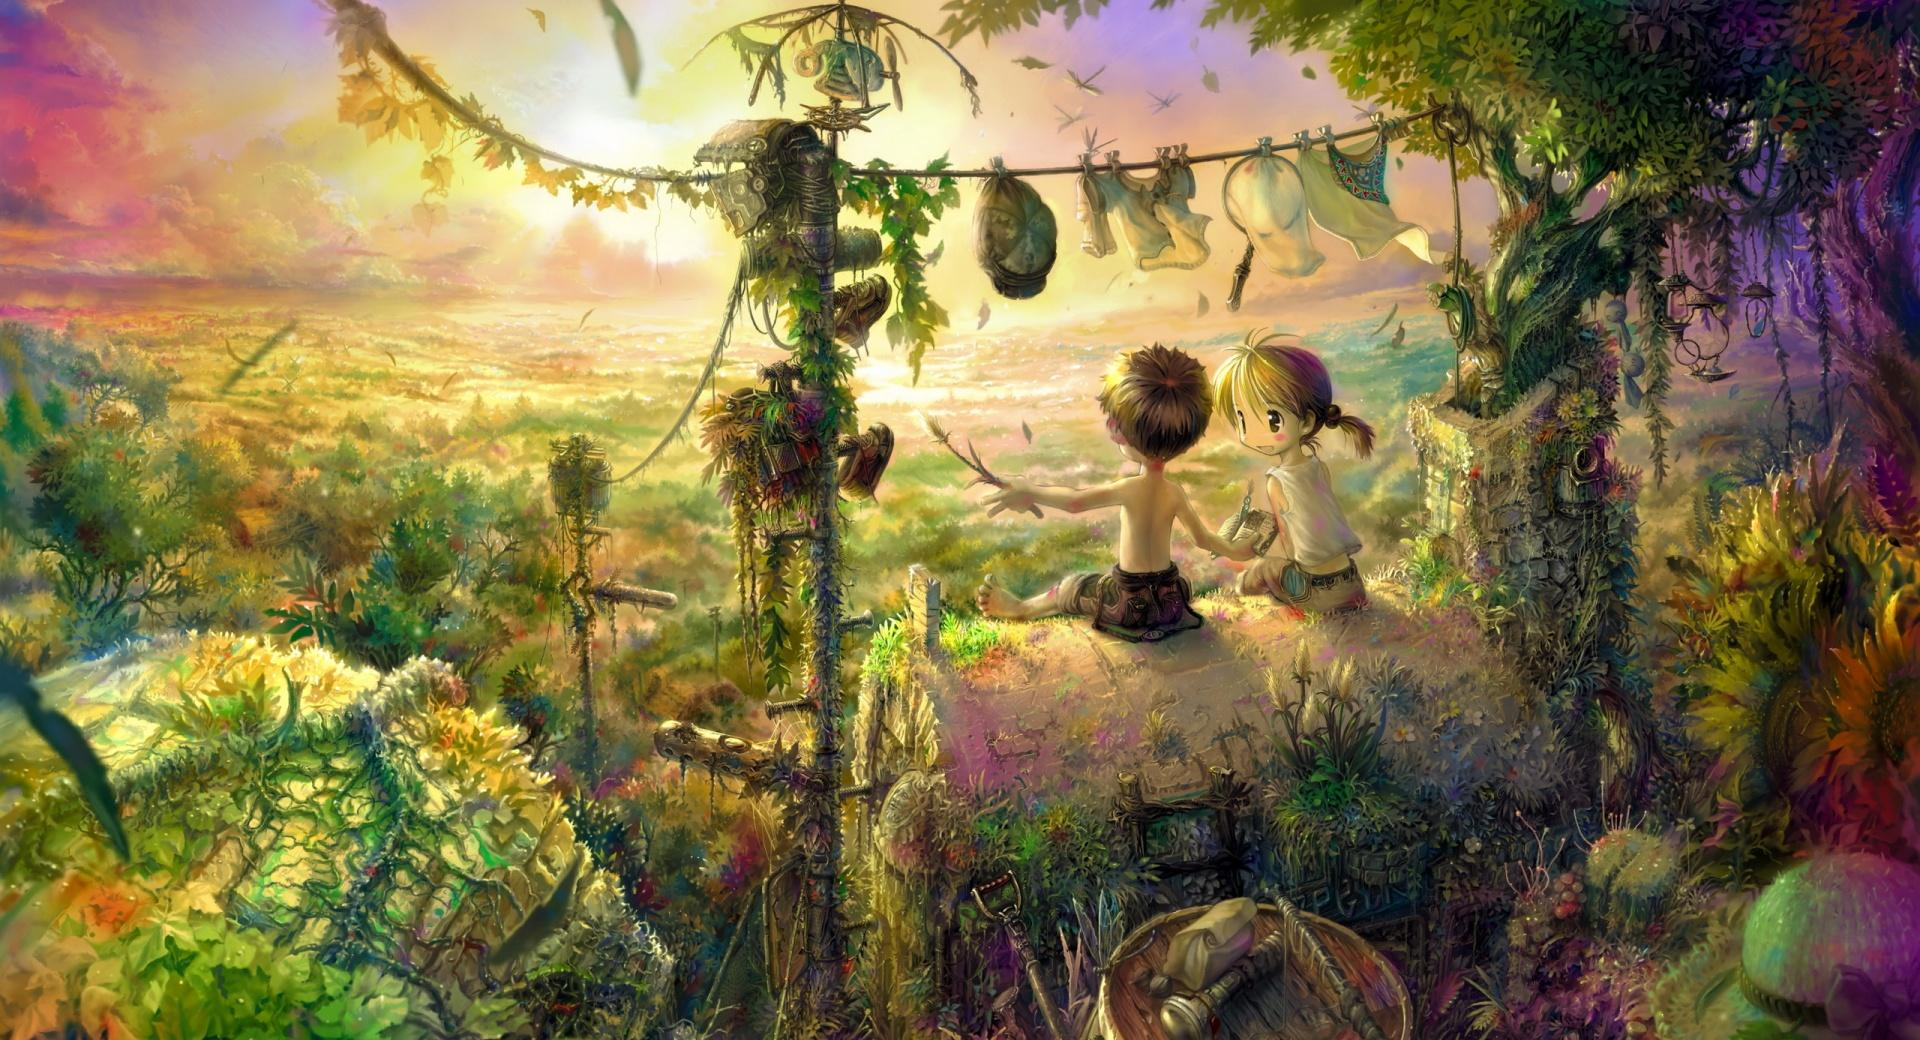 Childhood Painting wallpapers HD quality